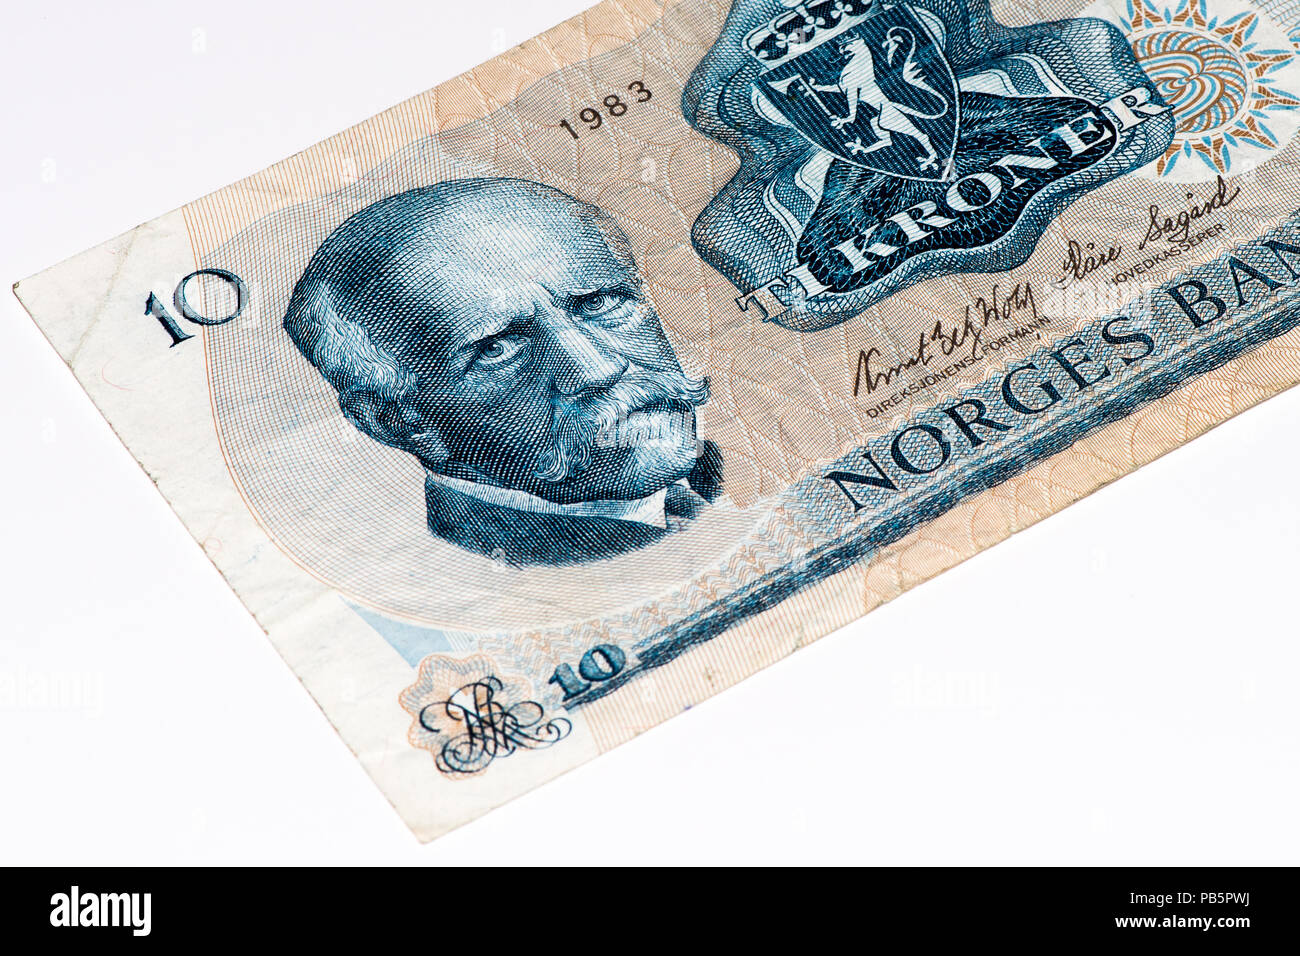 Krone Currency Symbol Stock Photos Krone Currency Symbol Stock